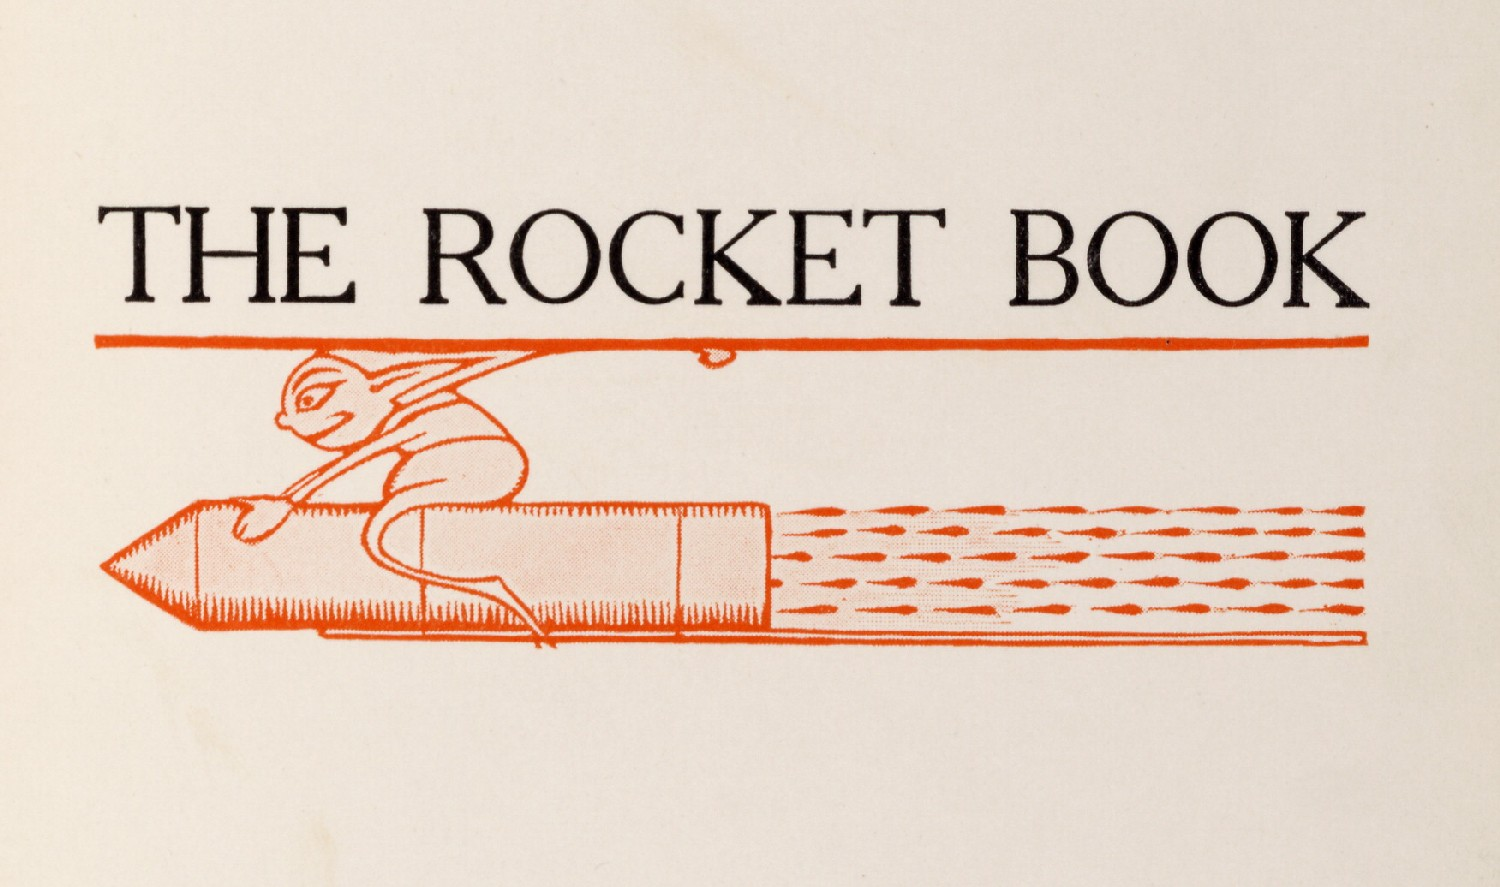 The Rocket Book 1912